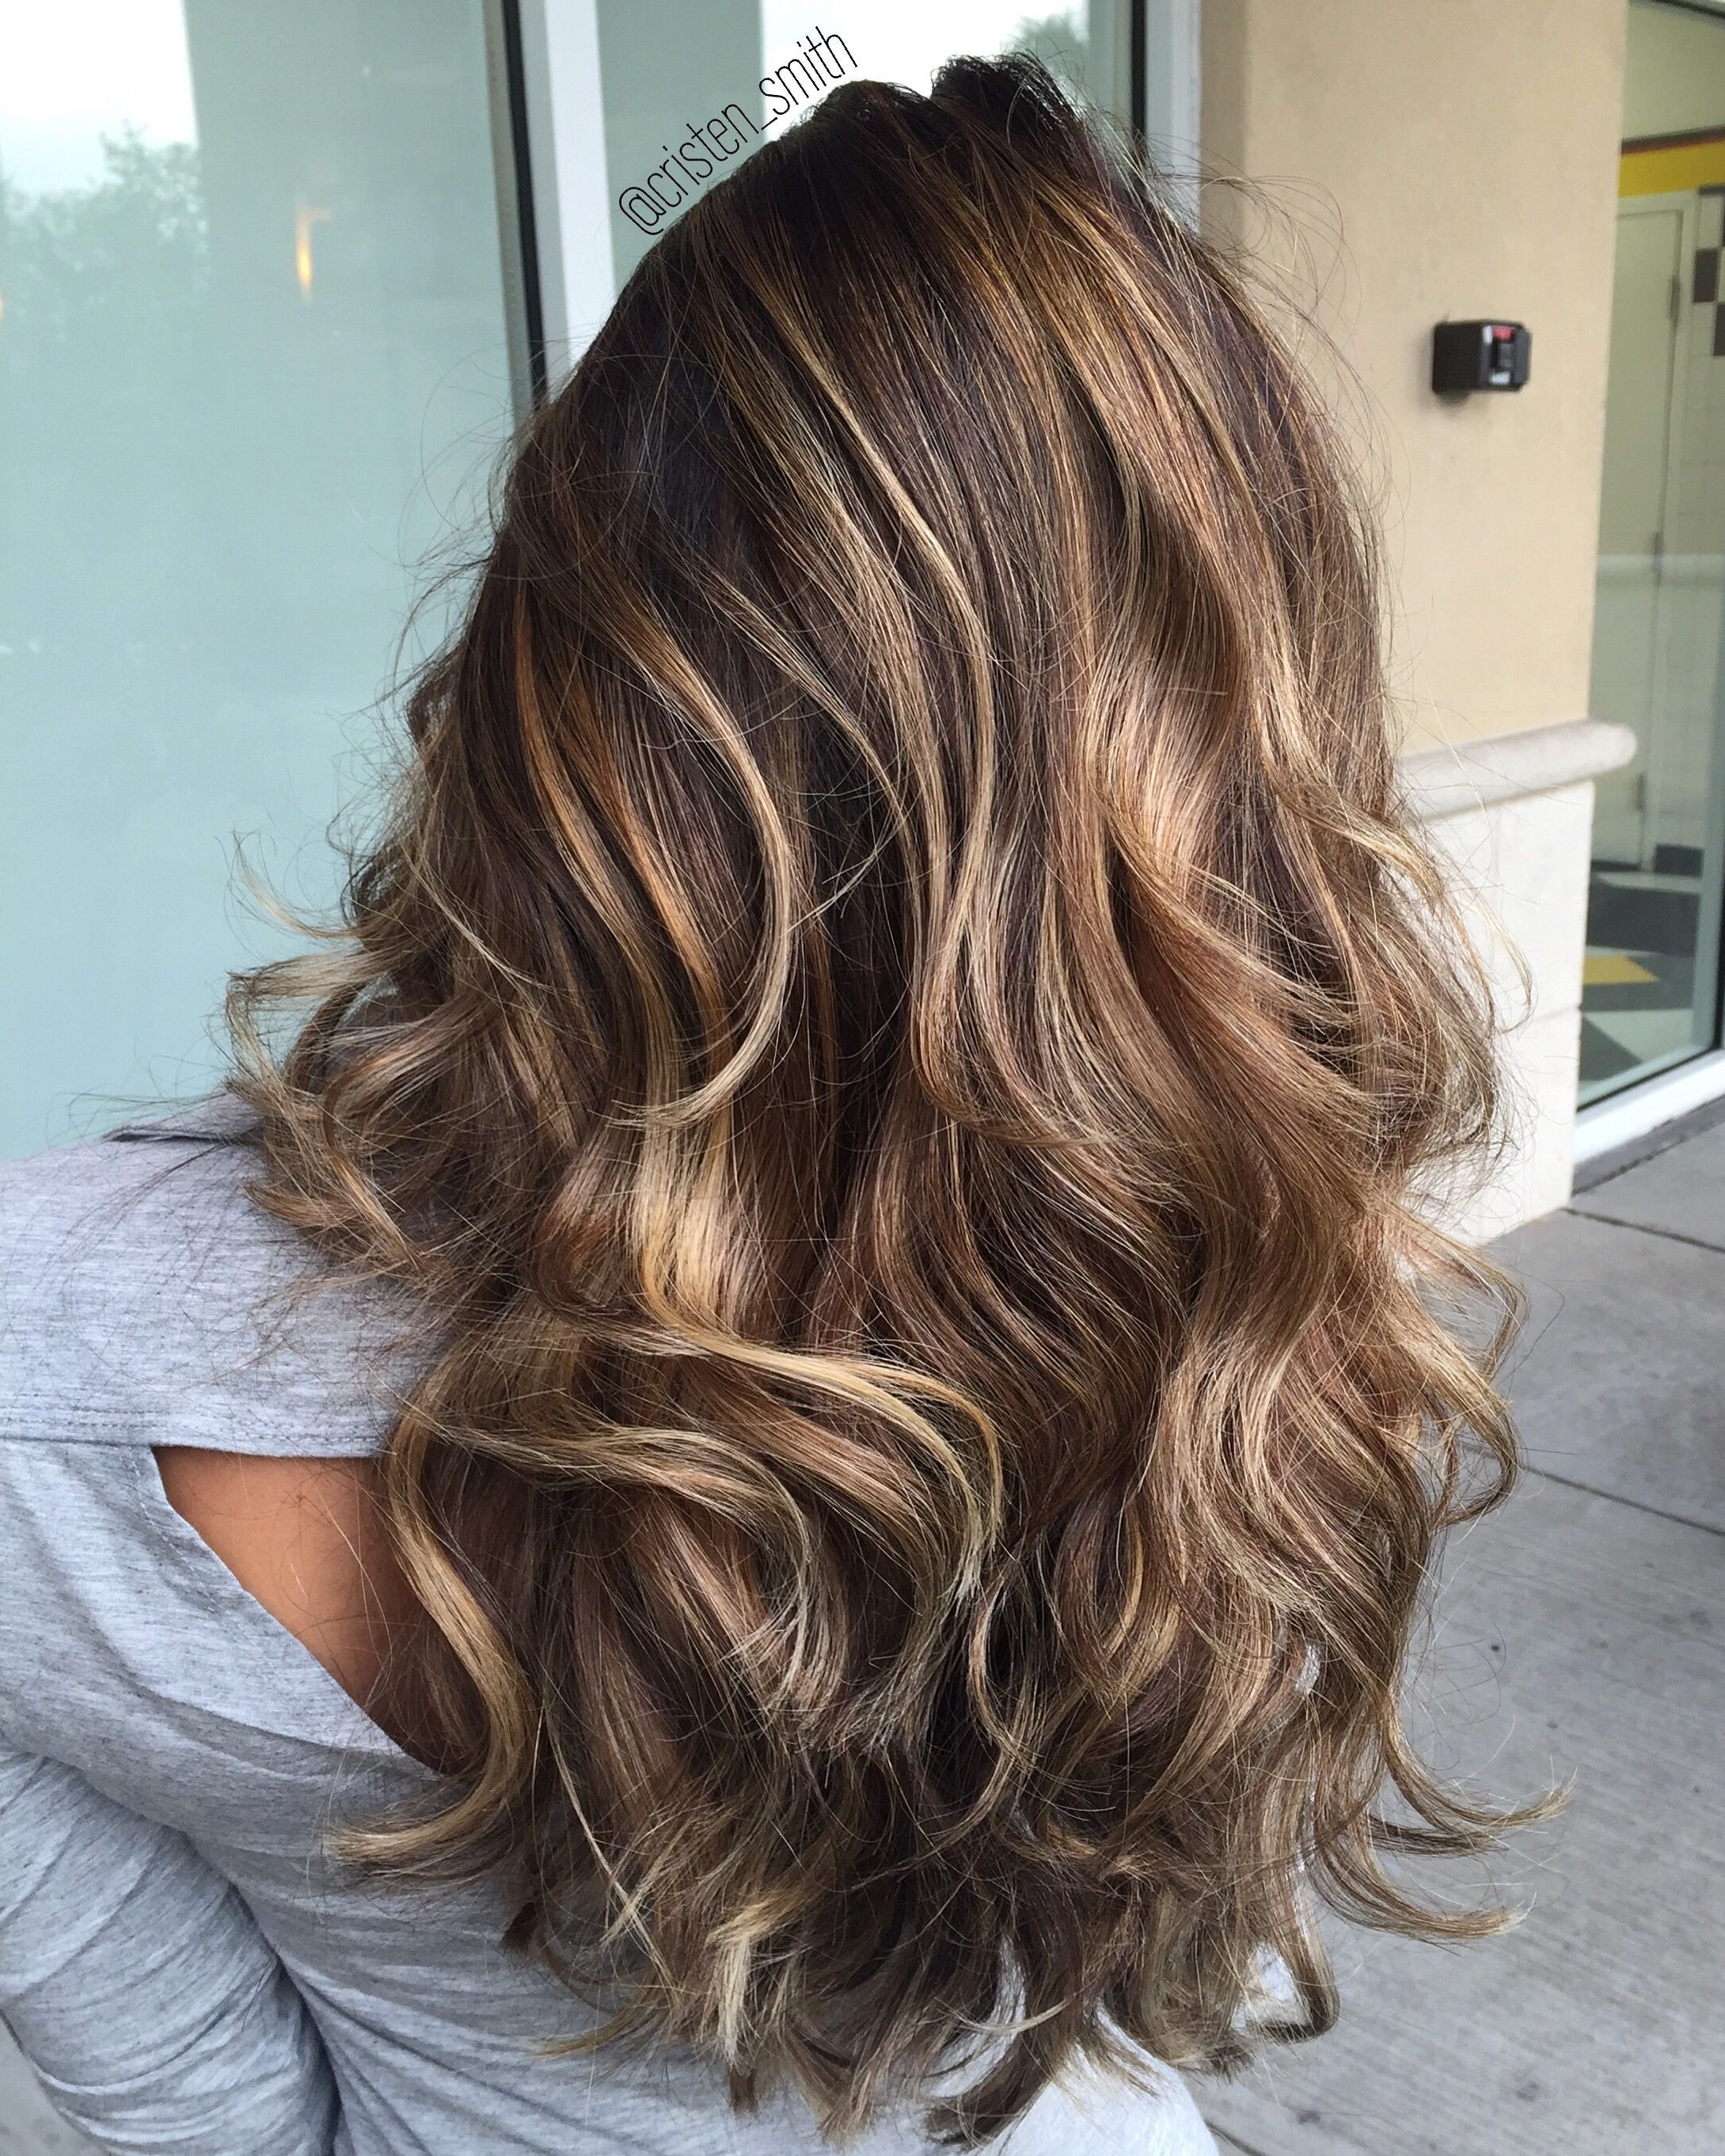 10 Awesome Hair Color Ideas For Brunettes With Highlights 25 delightfully earthy fall hair color ideas ashy blonde blonde